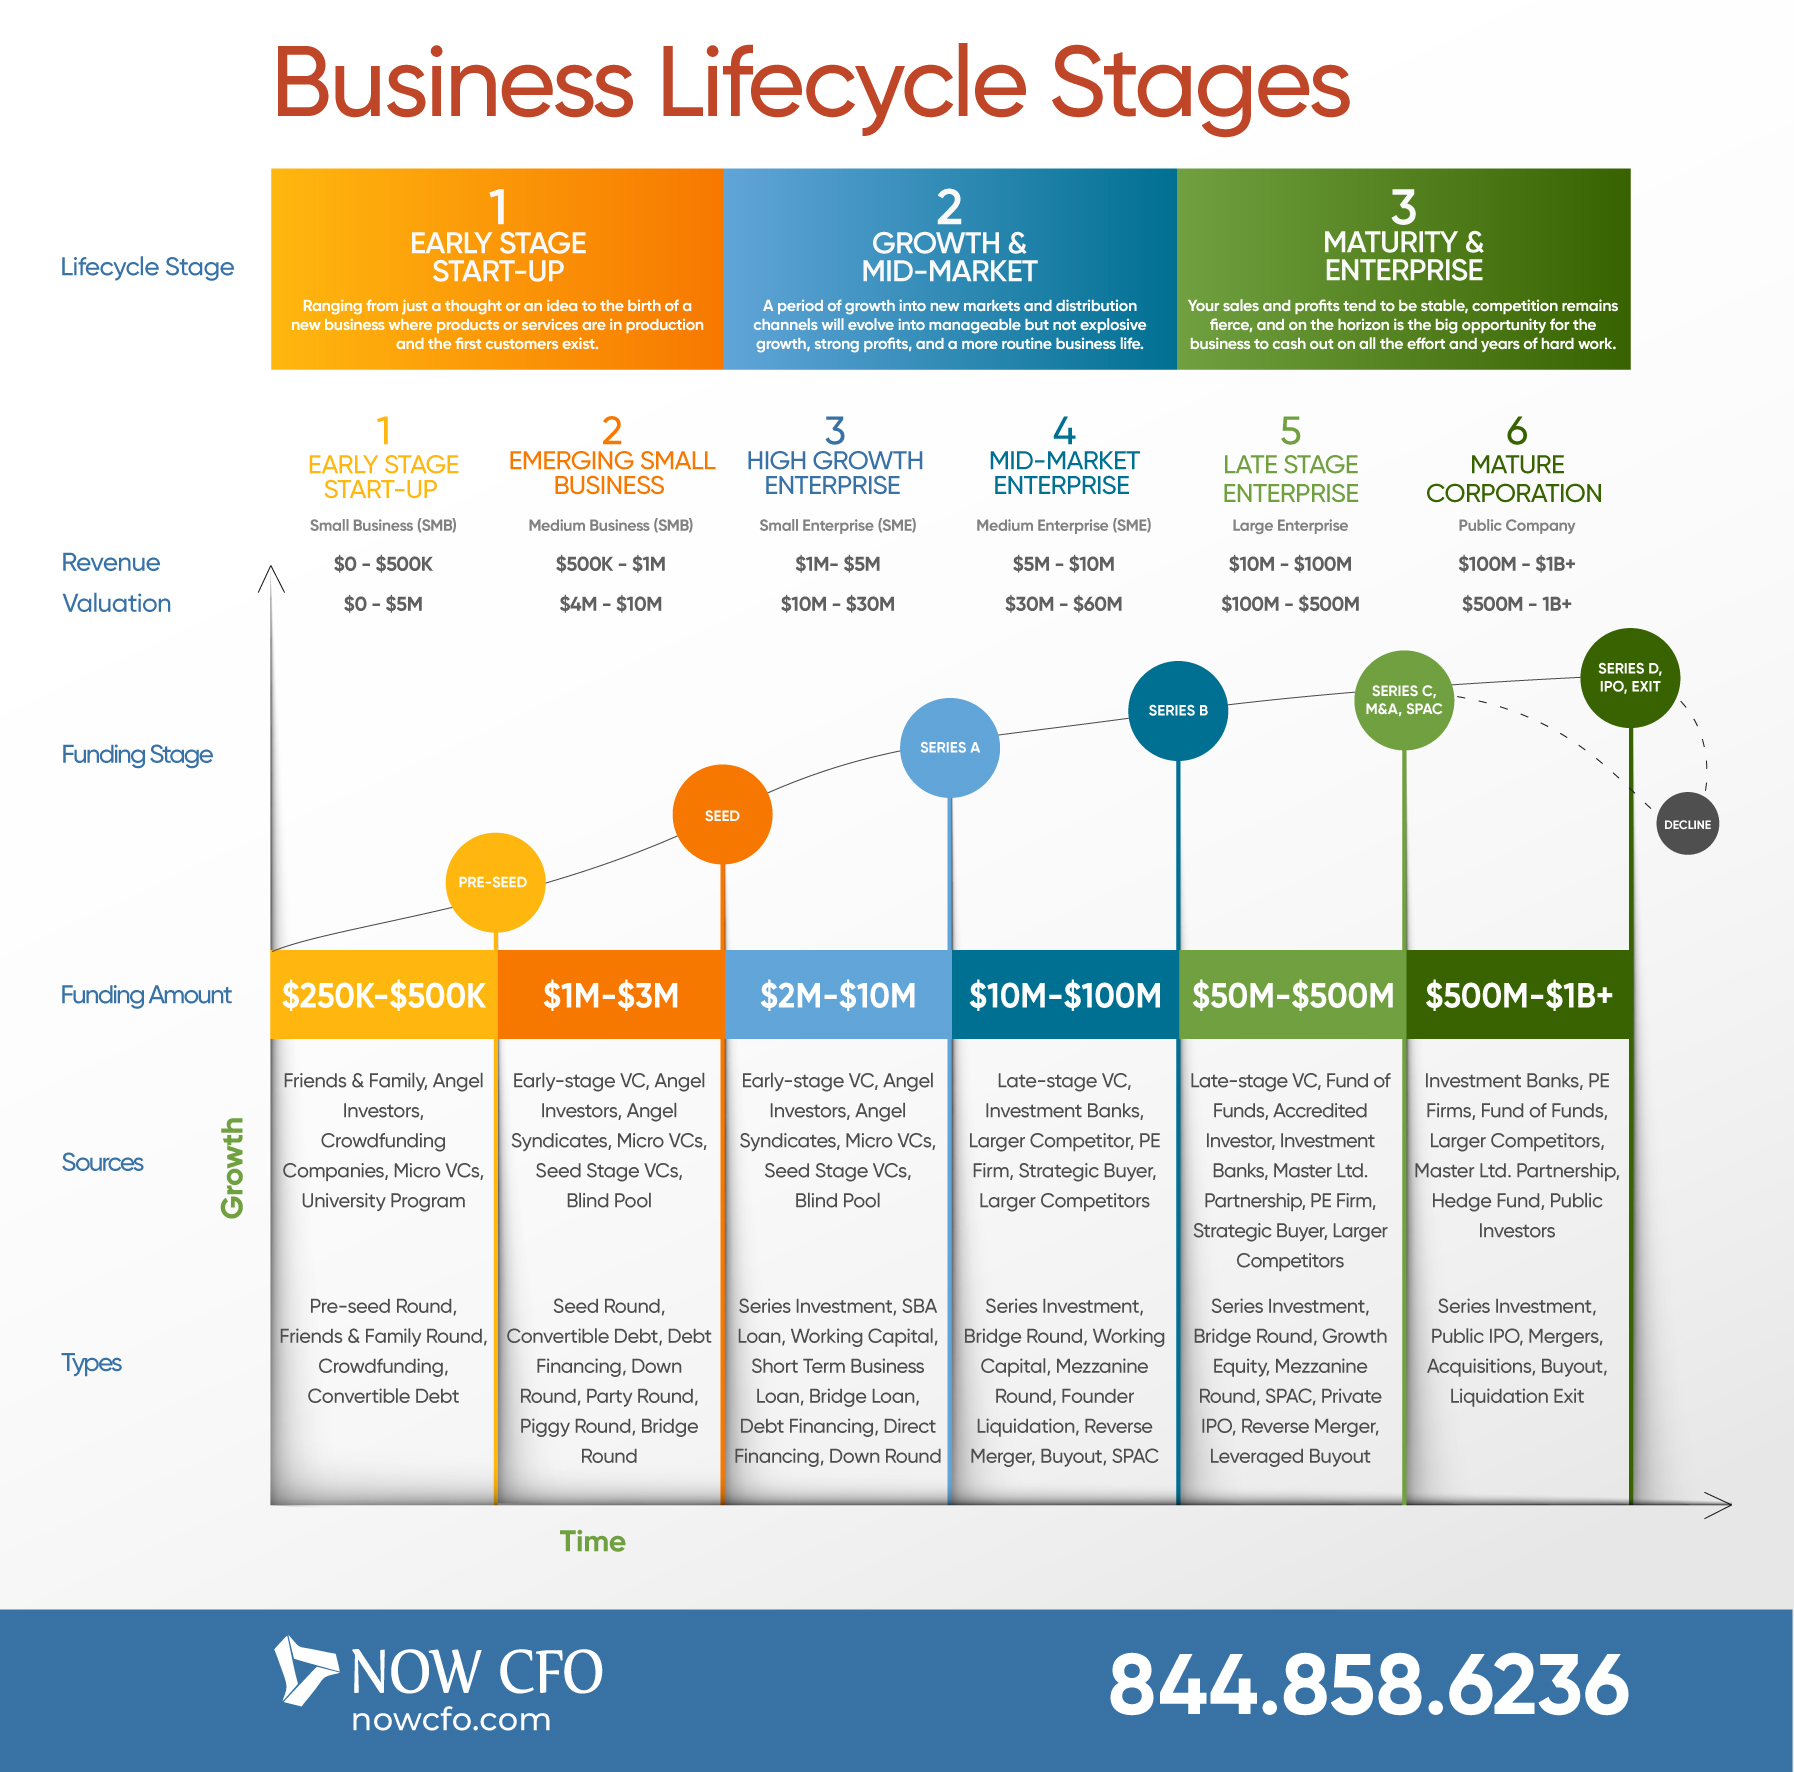 3 Business Lifecycle Stages